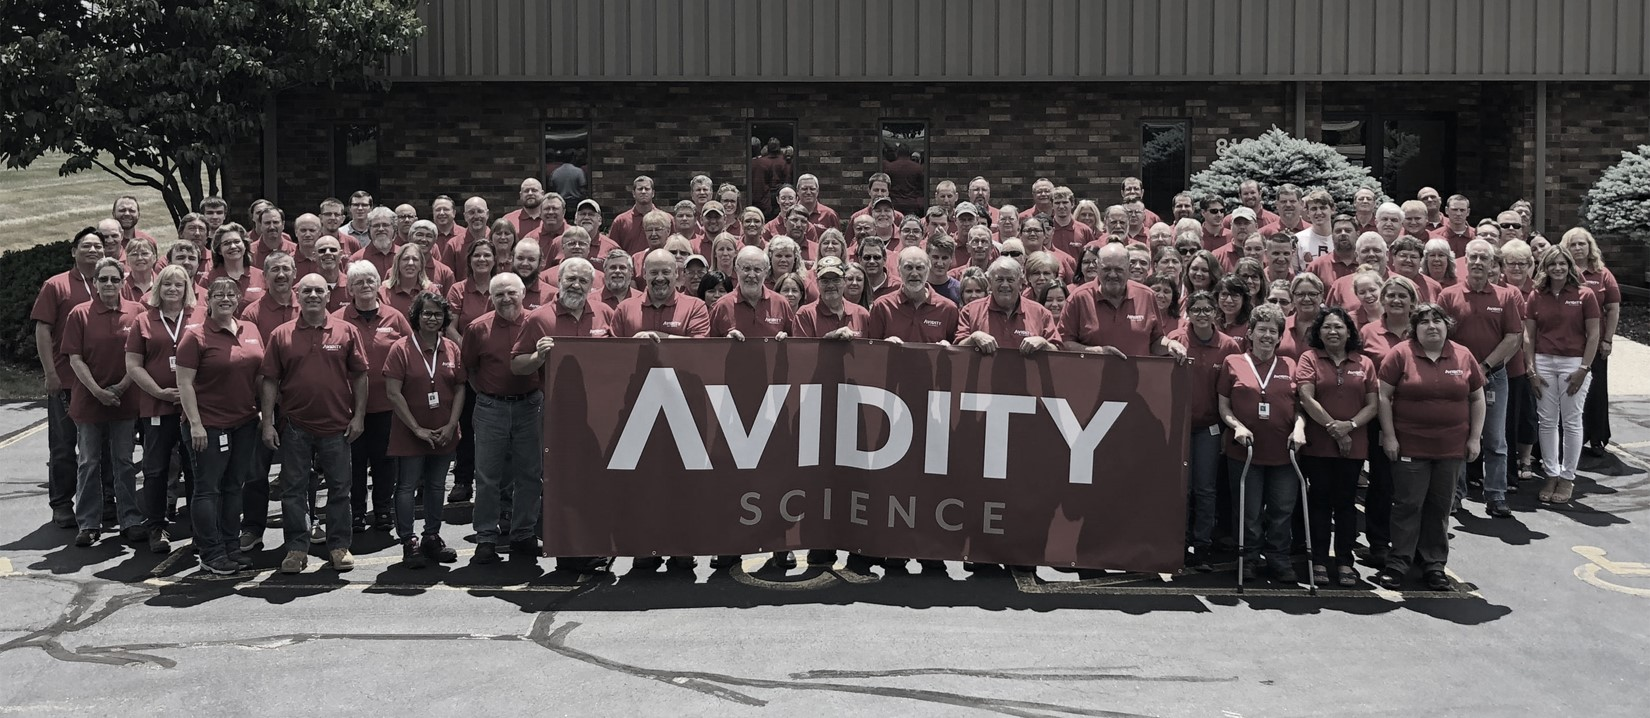 Avidity Group Shot